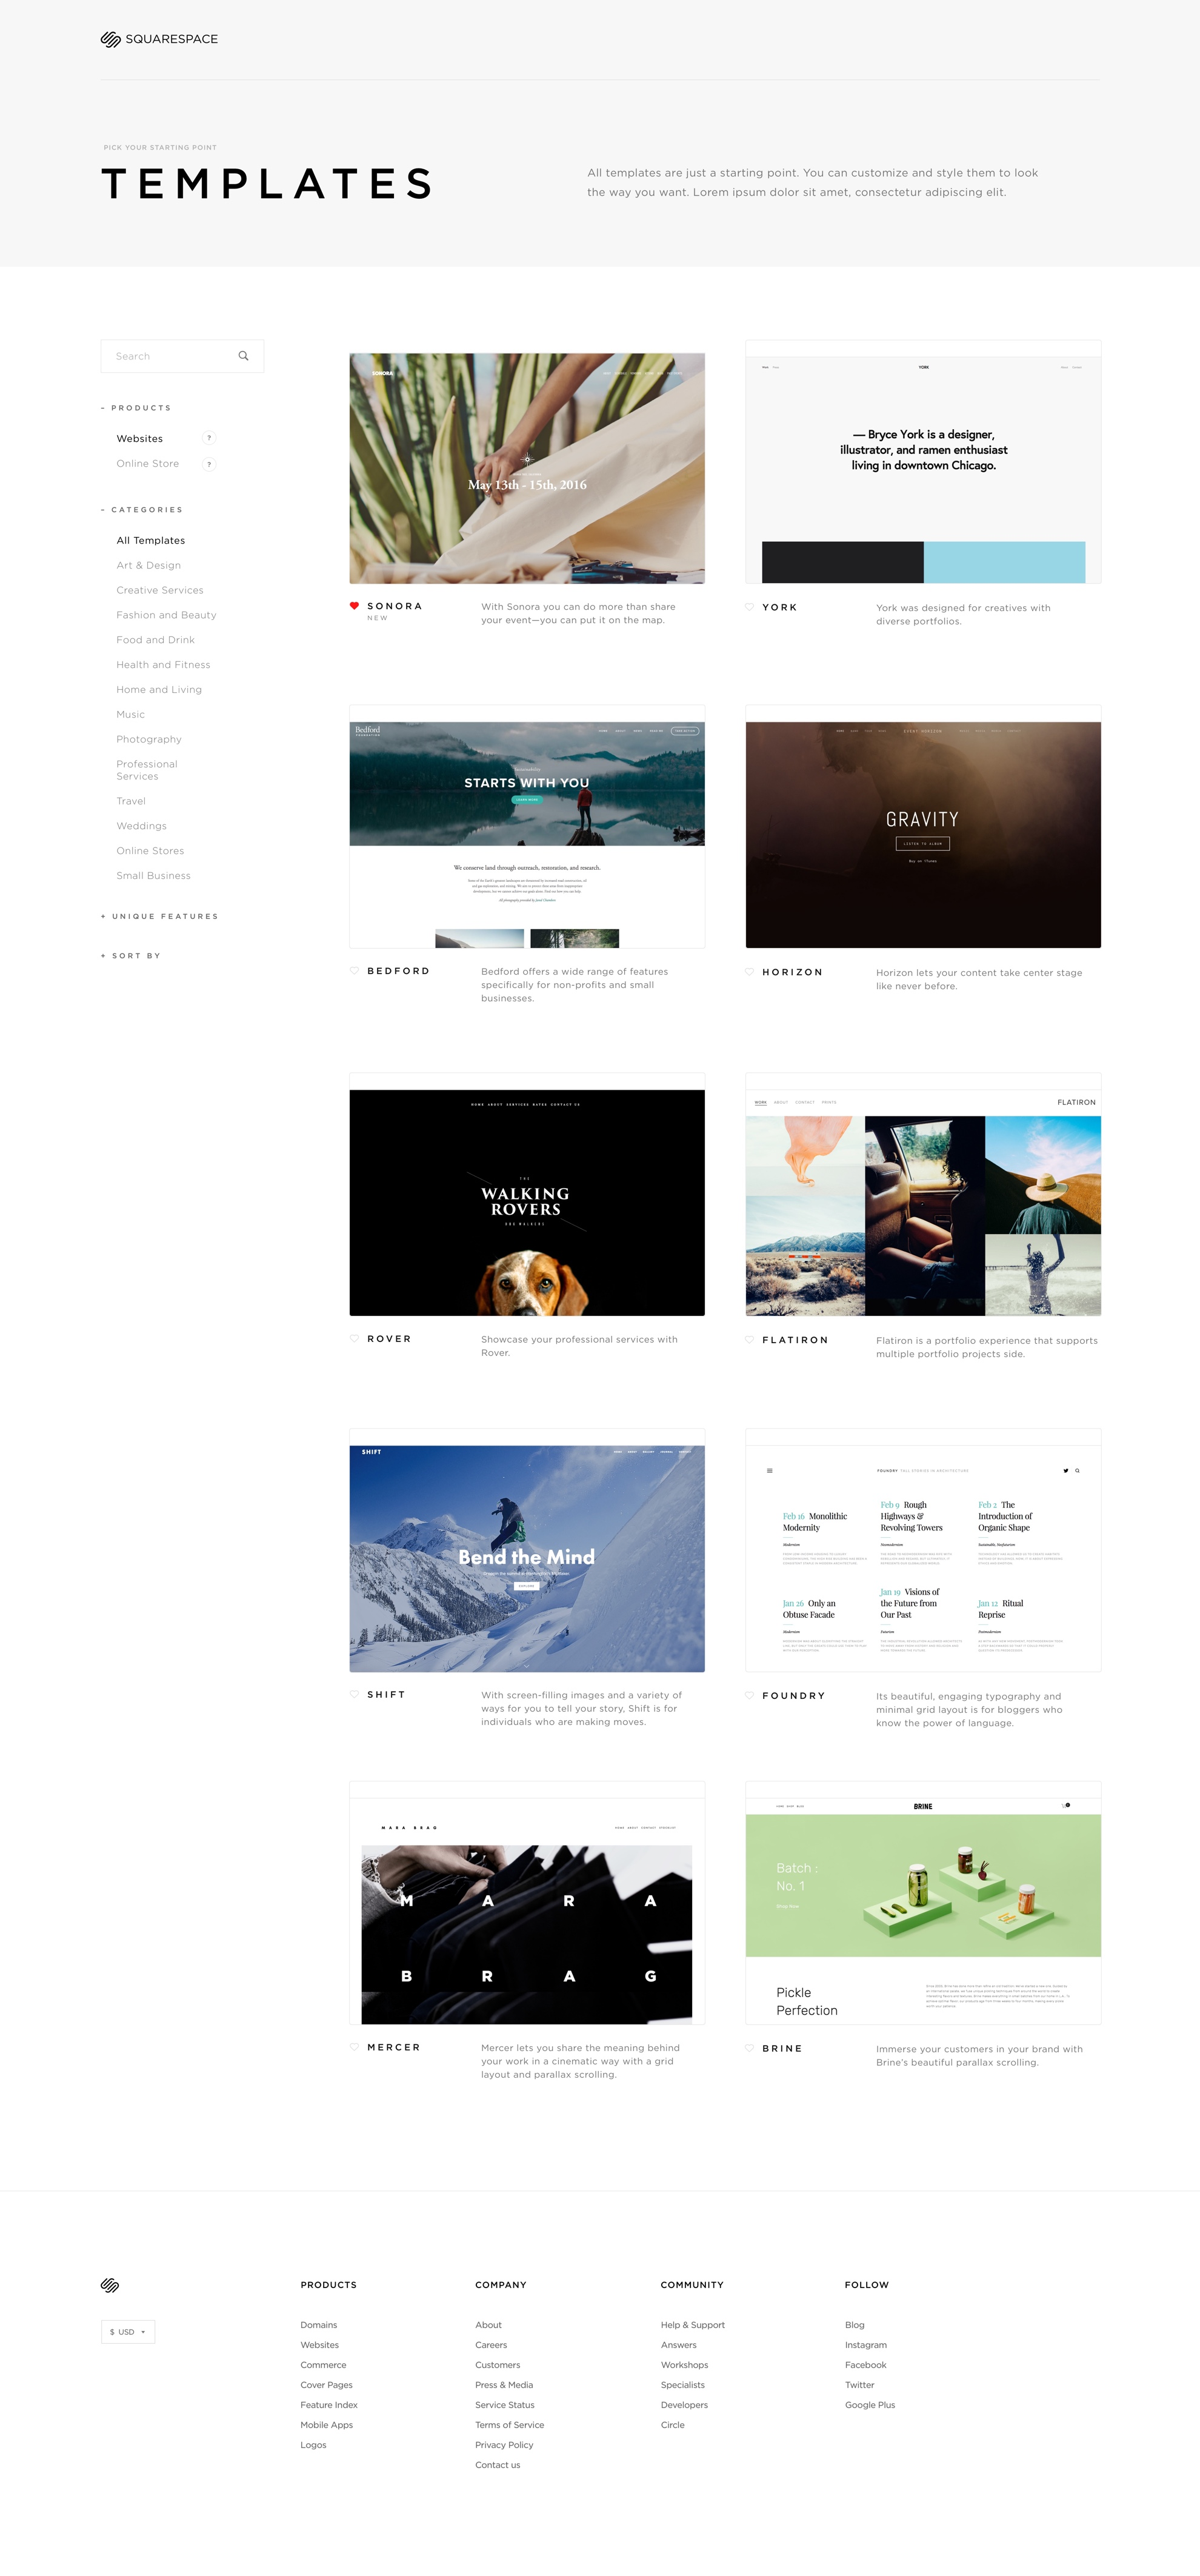 afr_p1_squarespace_template_store_1.jpg